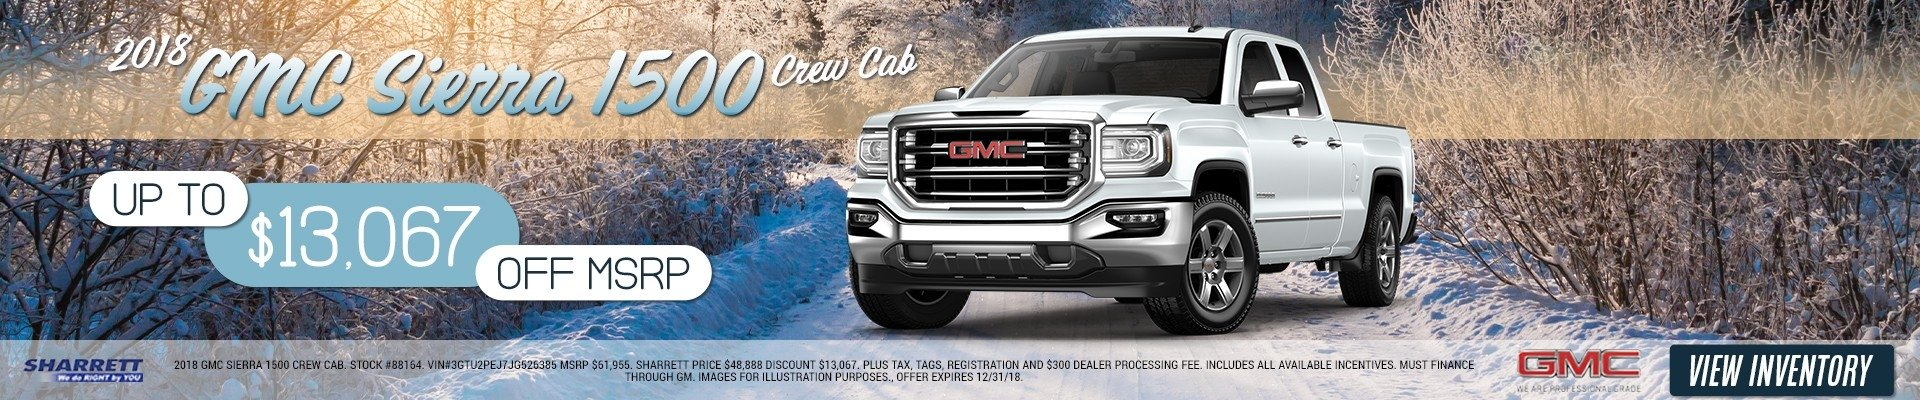 Up to $13,067 off MSRP on a 2018 GMC Sierra 1500 Crew Cab